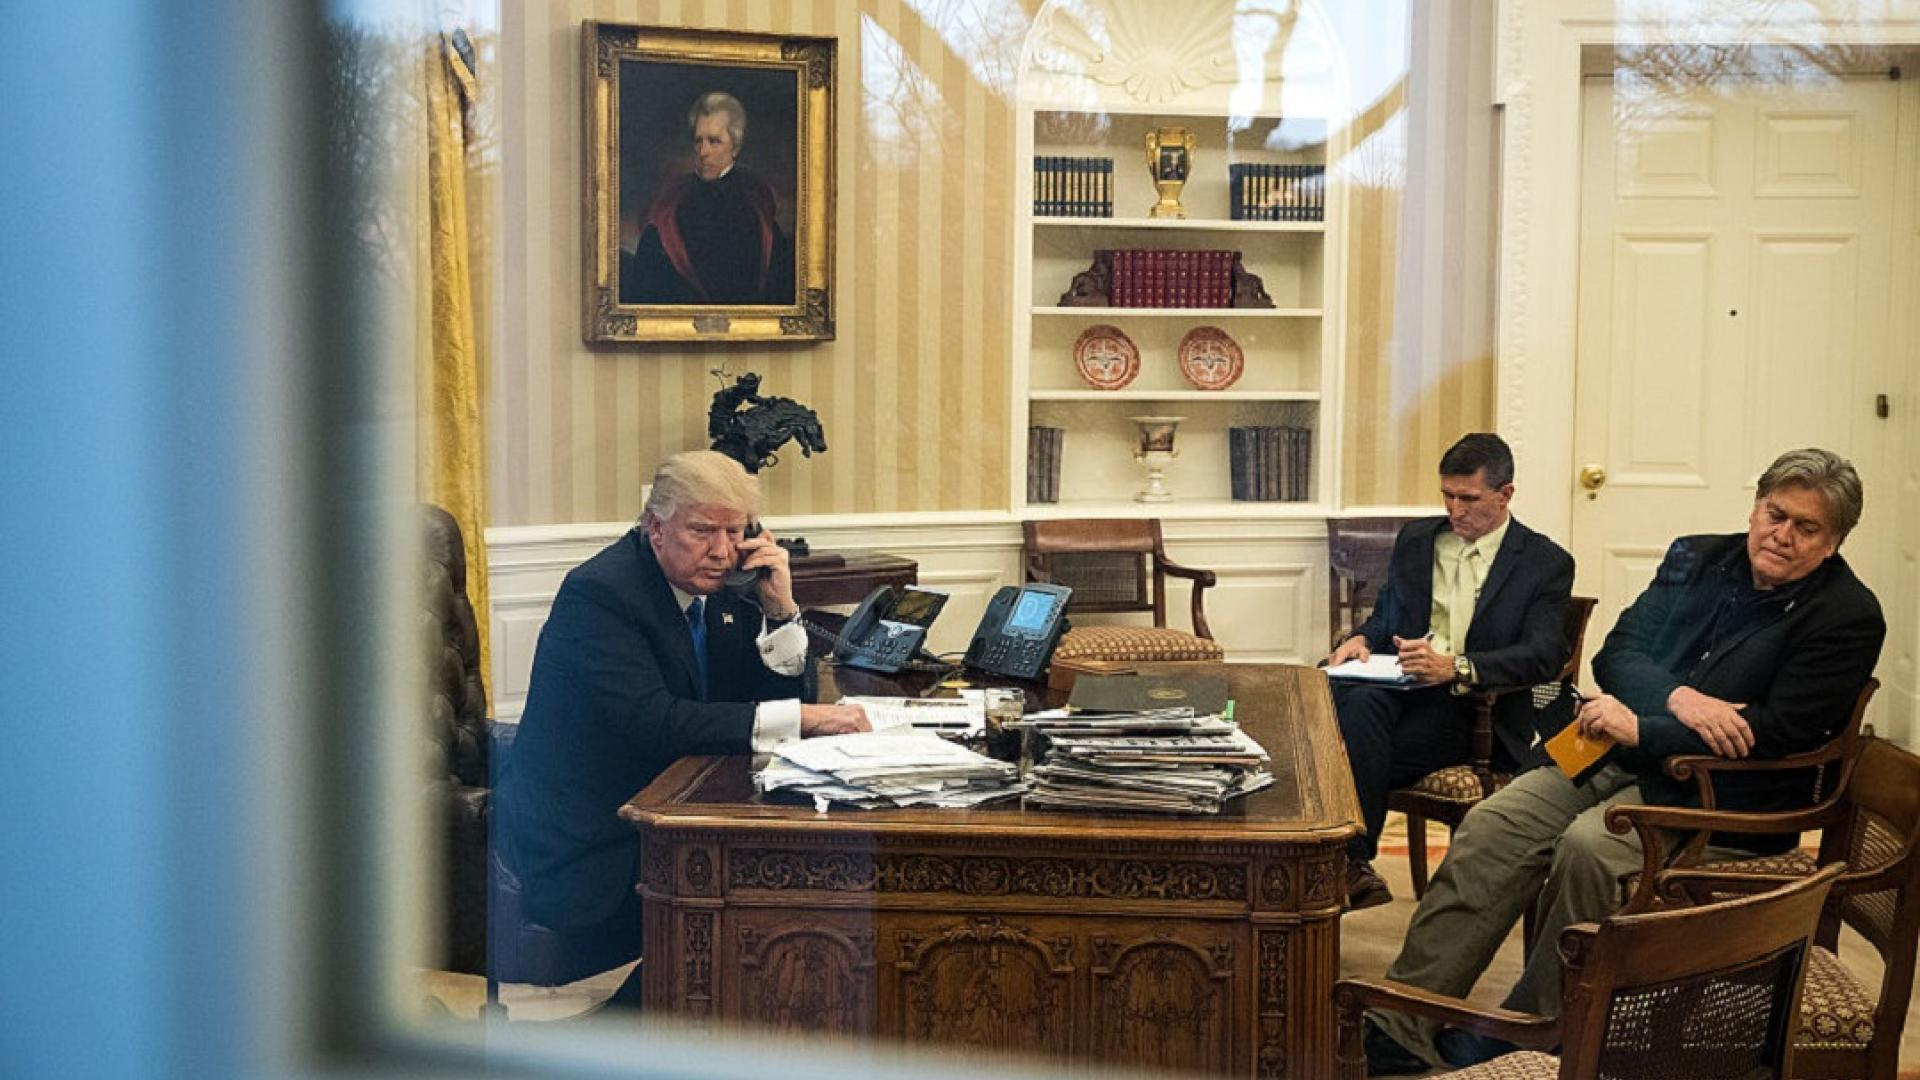 Steve Bannon in the Oval Office with President Trump.